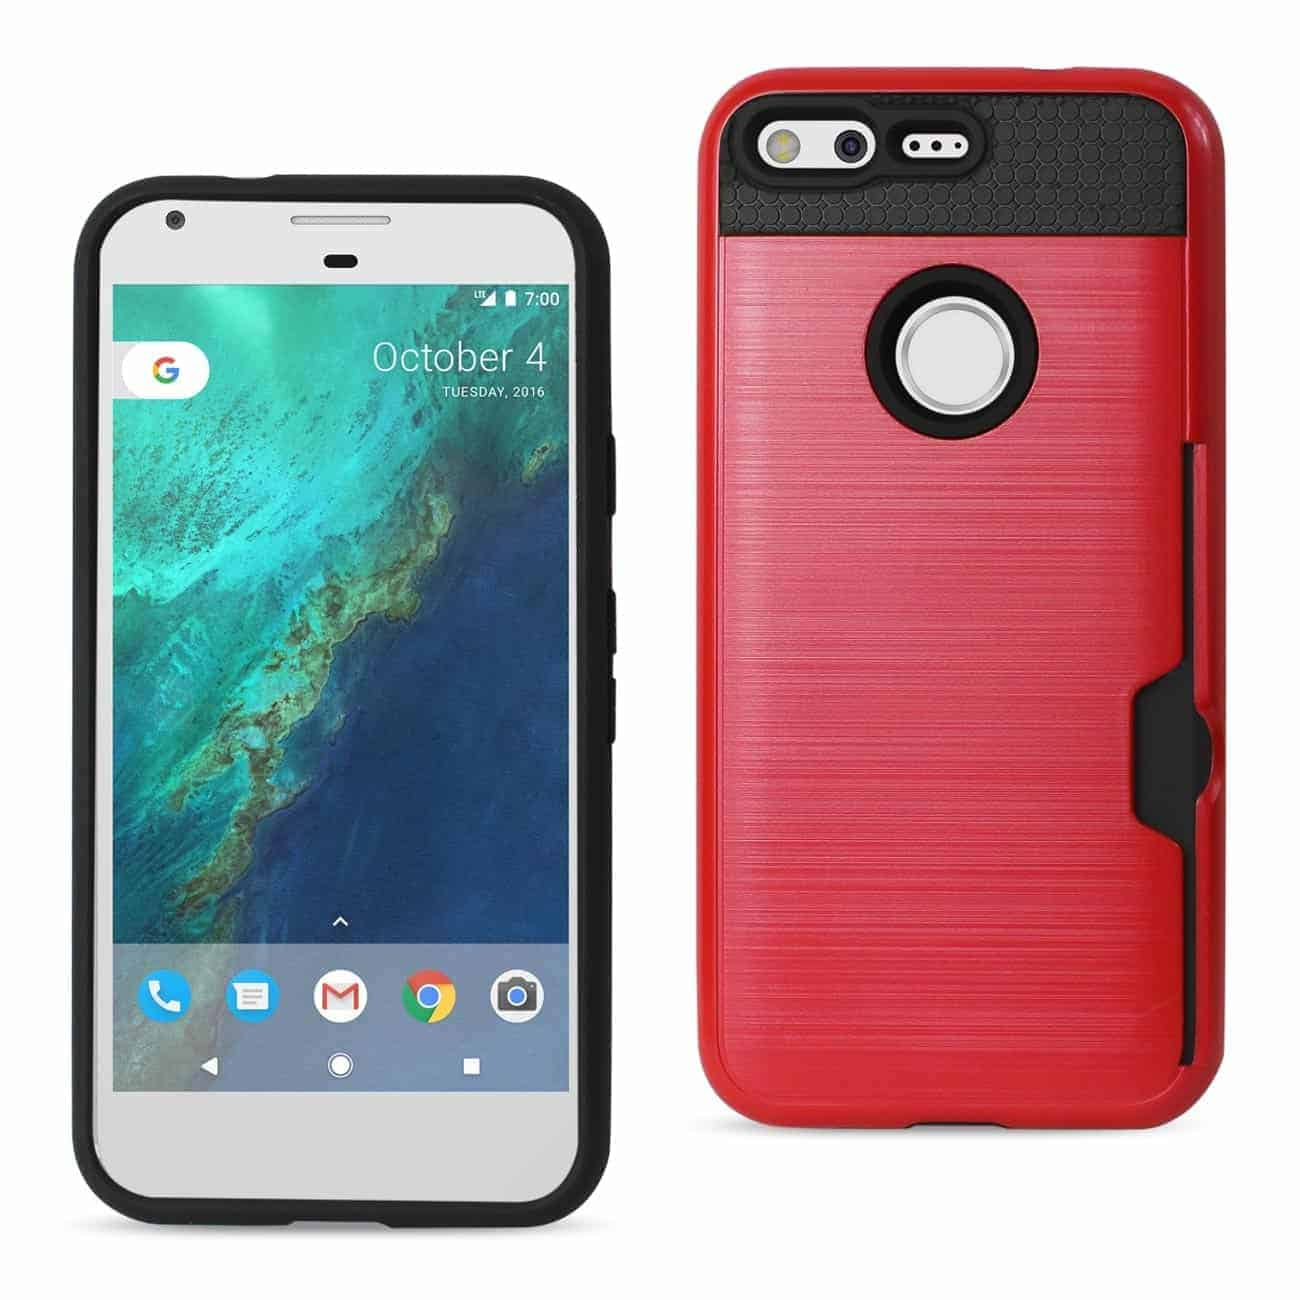 GOOGLE PIXEL SLIM ARMOR HYBRID CASE WITH CARD HOLDER IN RED